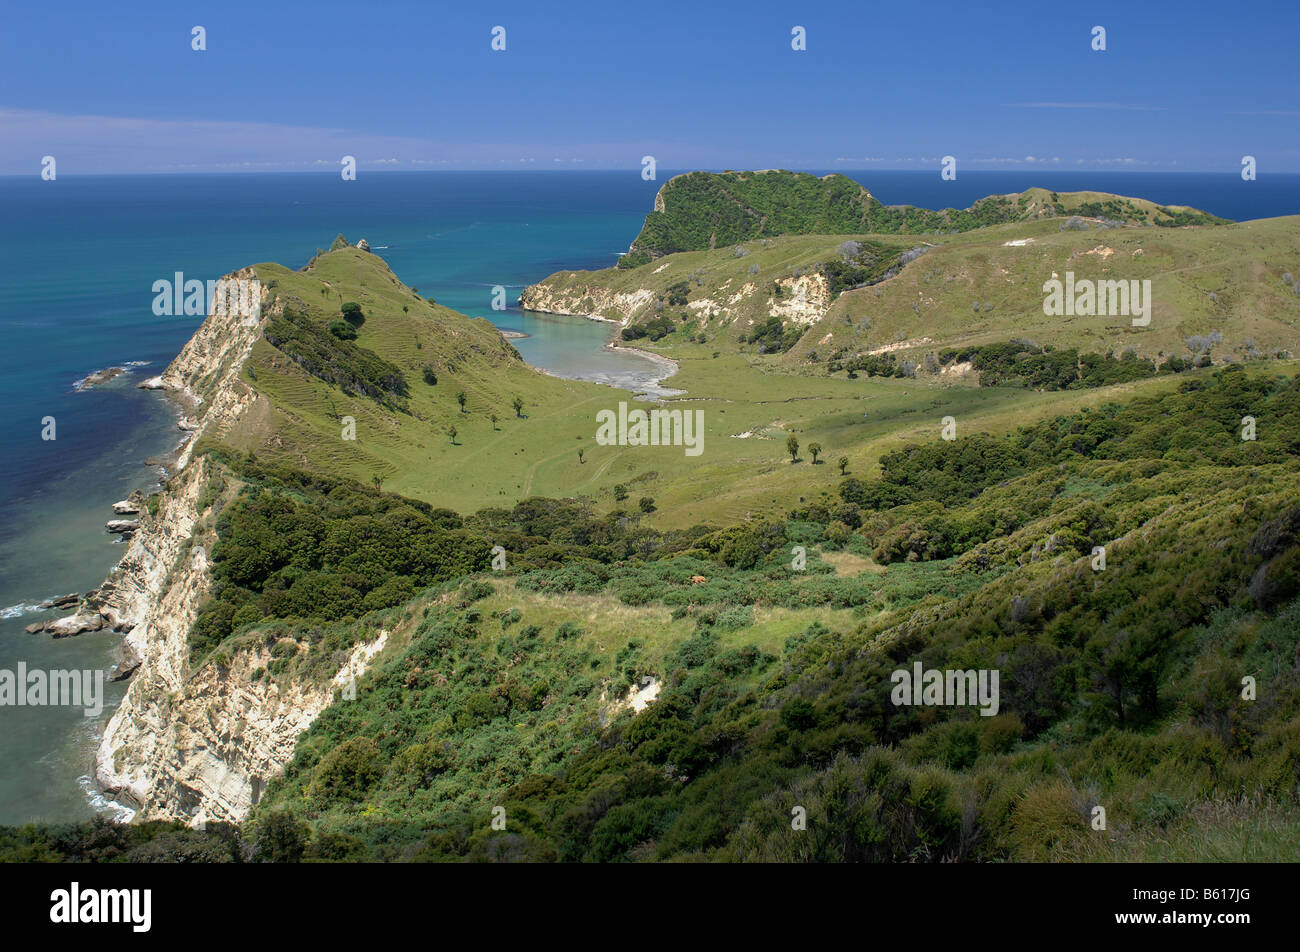 Coast, Nr Tolaga Bay, New Zealand - John Gollop - Stock Image